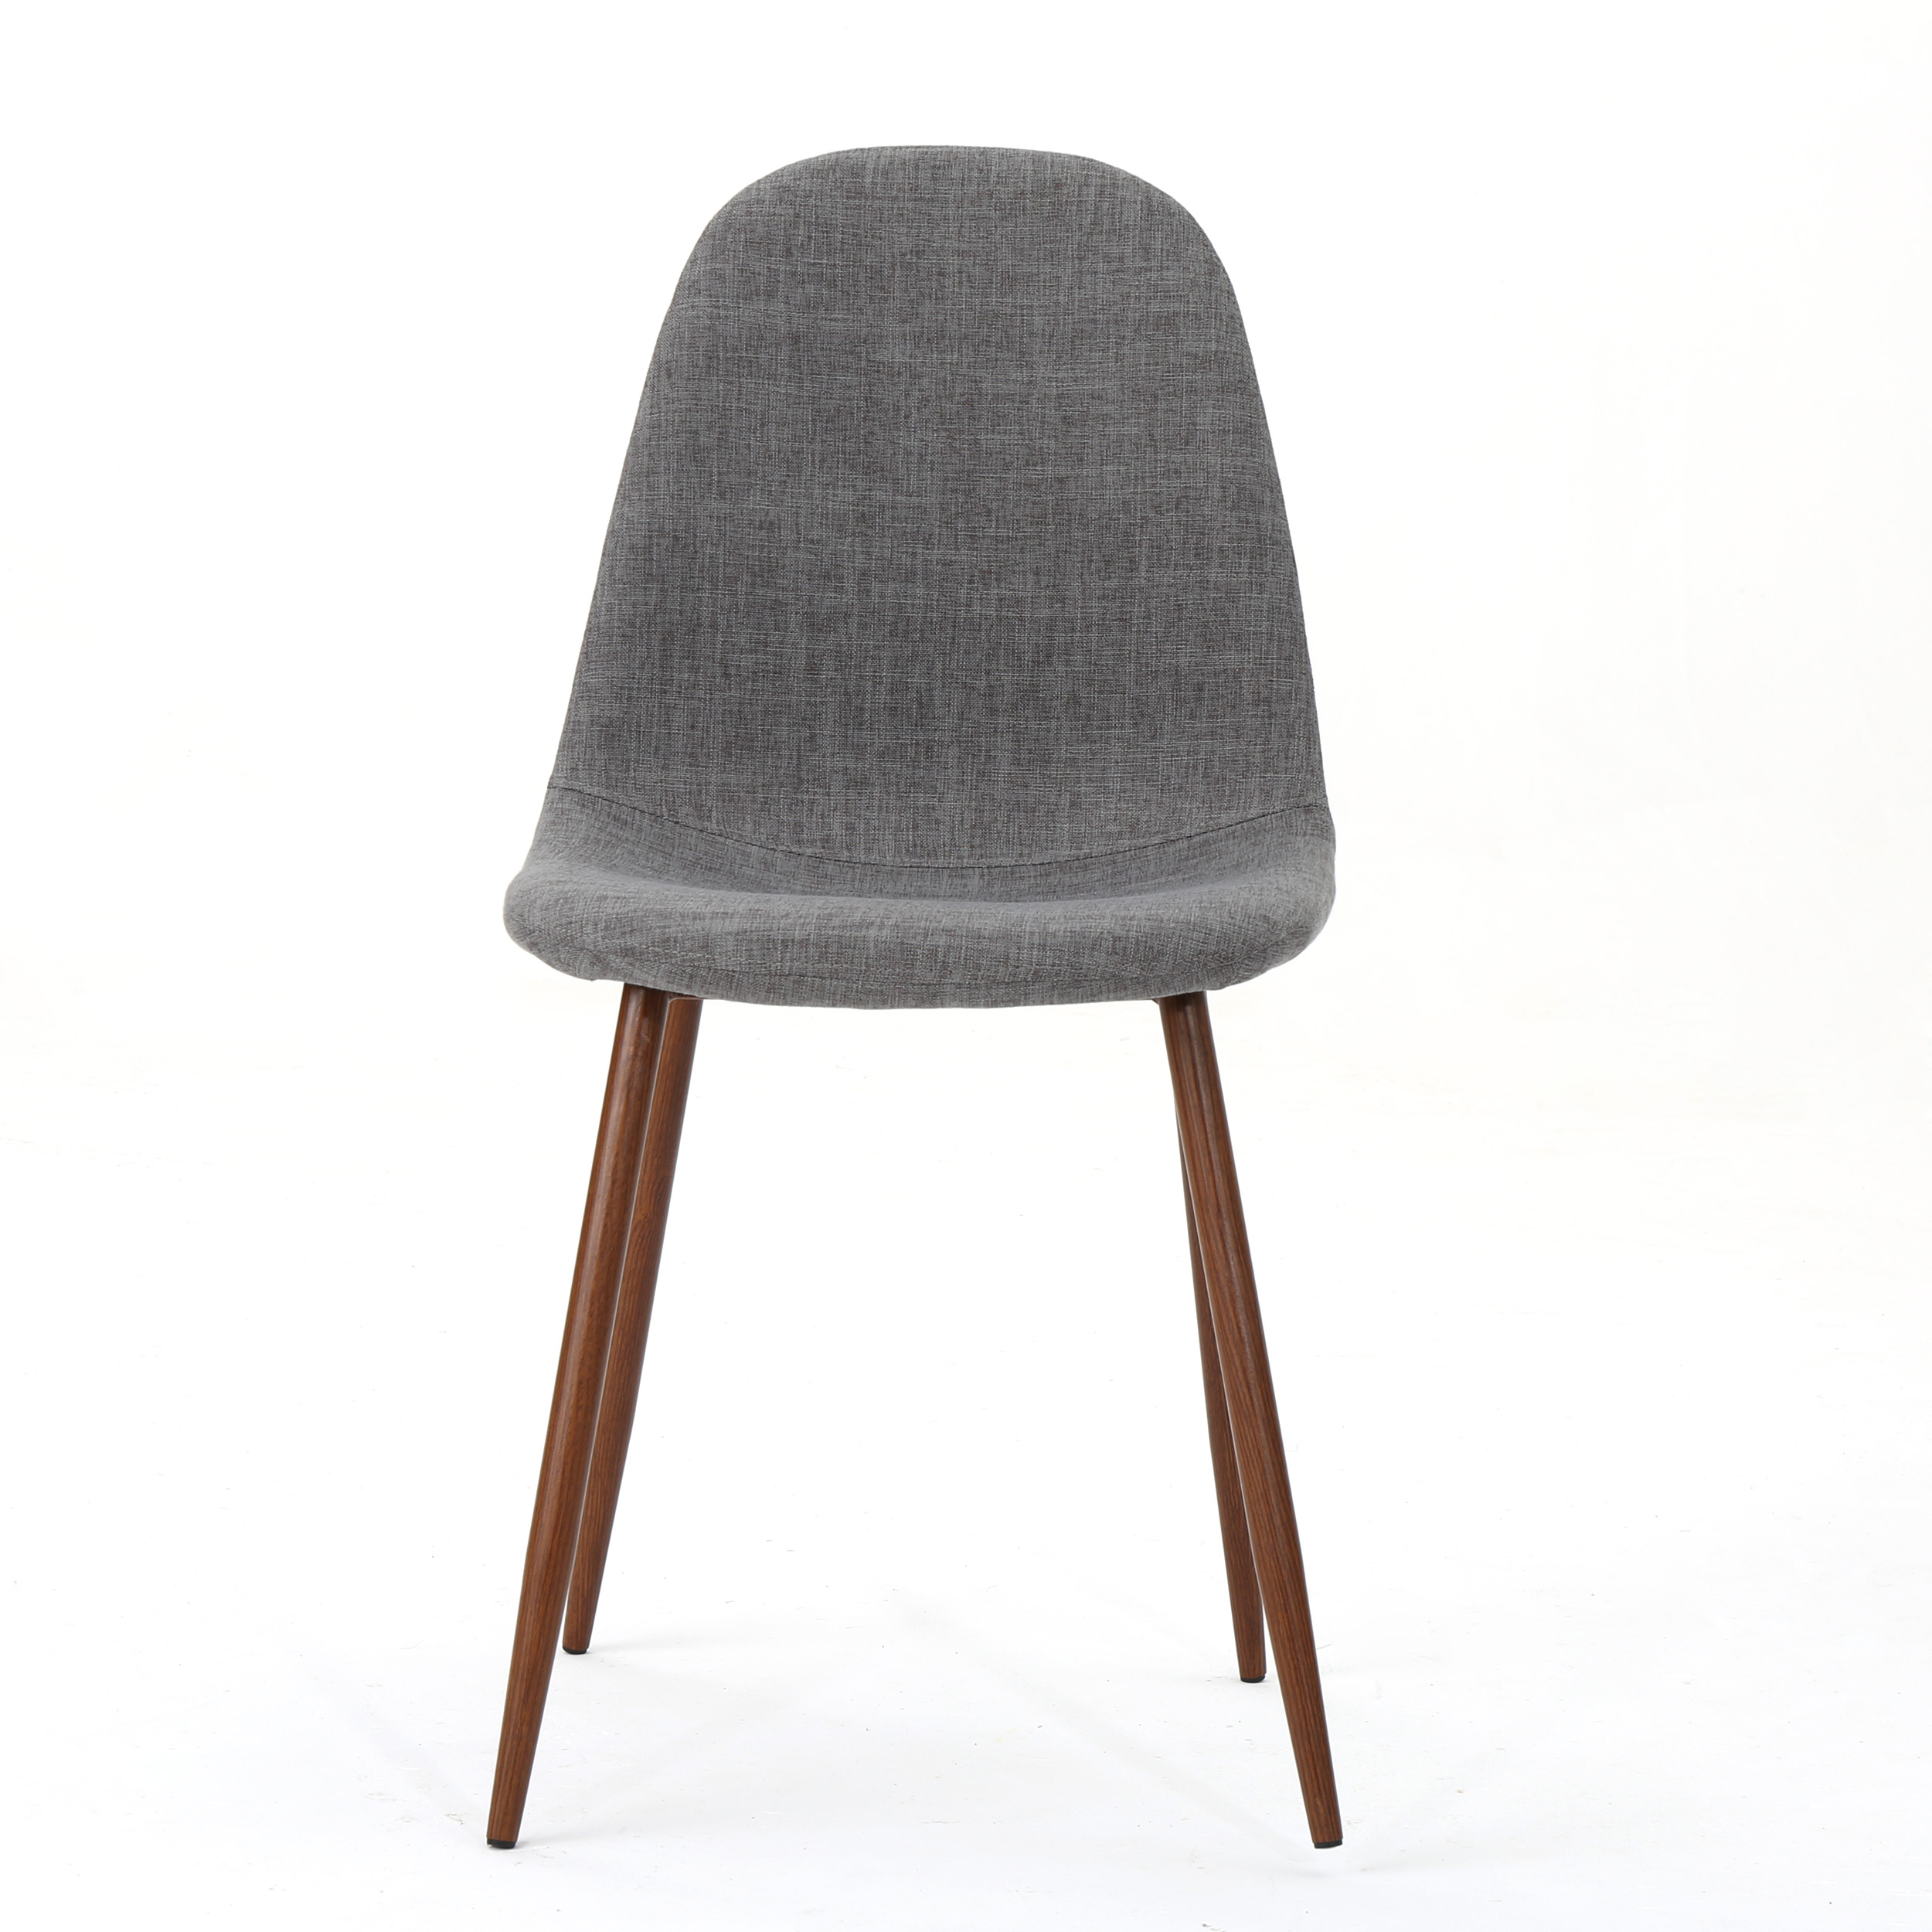 Details About Resta Mid Century Fabric Dining Chairs With Wood Finished Metal Legs Set Of 2